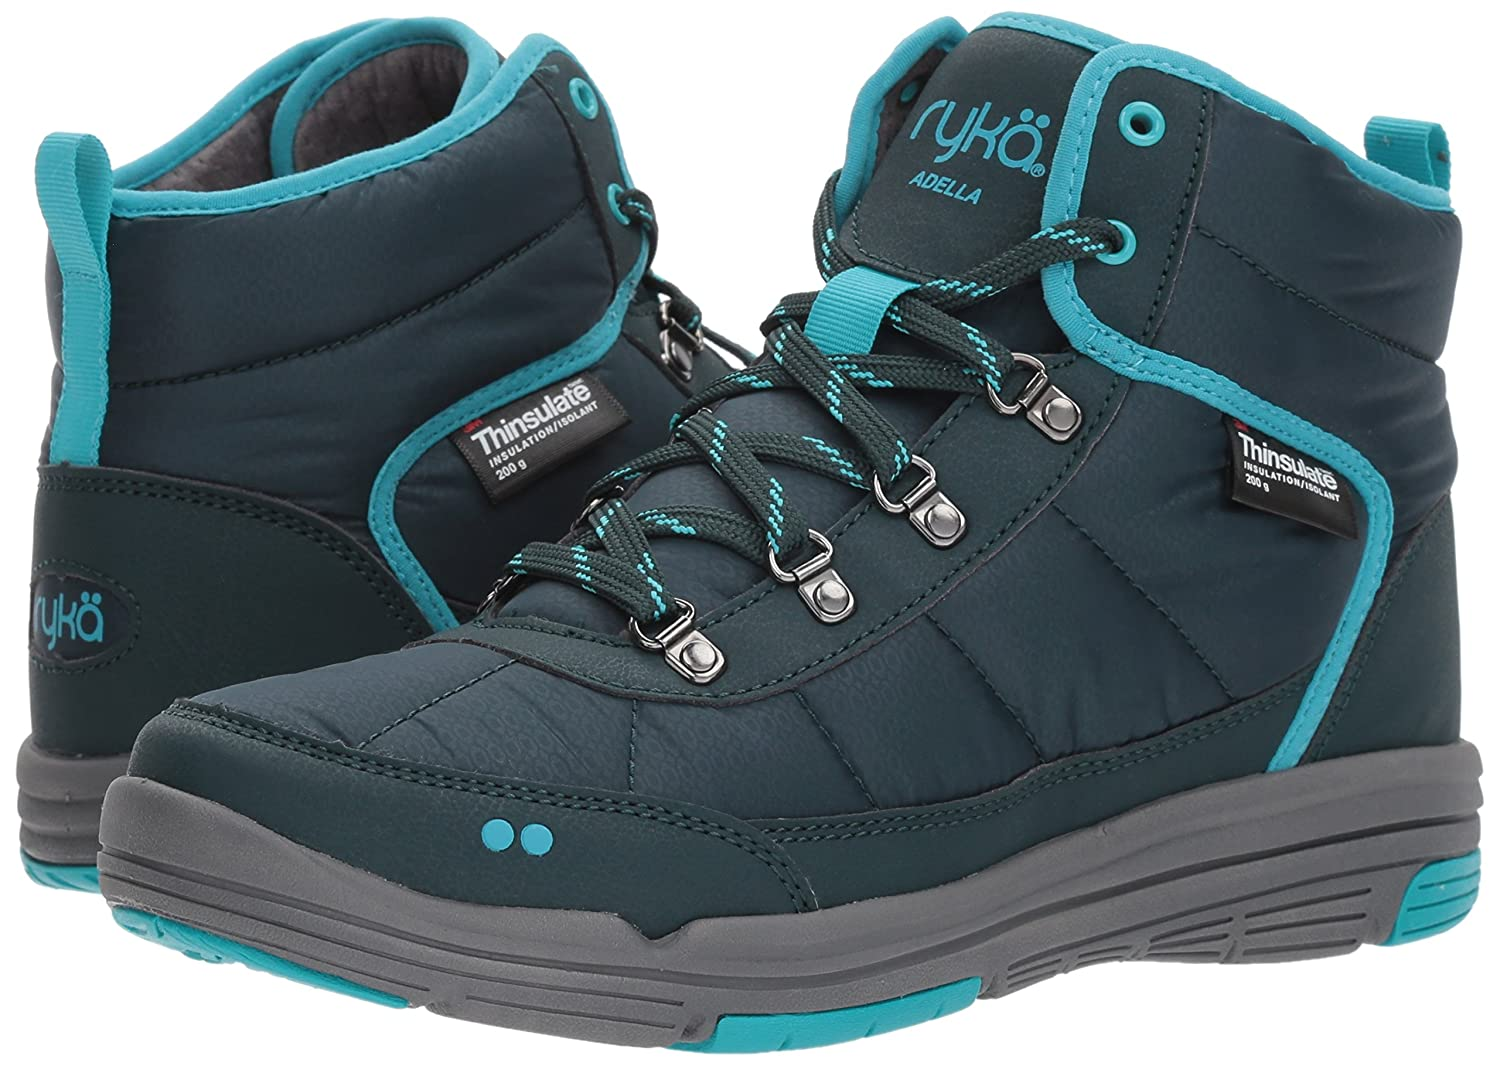 Ryka Women's Adella Fashion Boot B01N6Z9GH4 9.5 W US|Rich Teal/Bluebird/Slate Grey